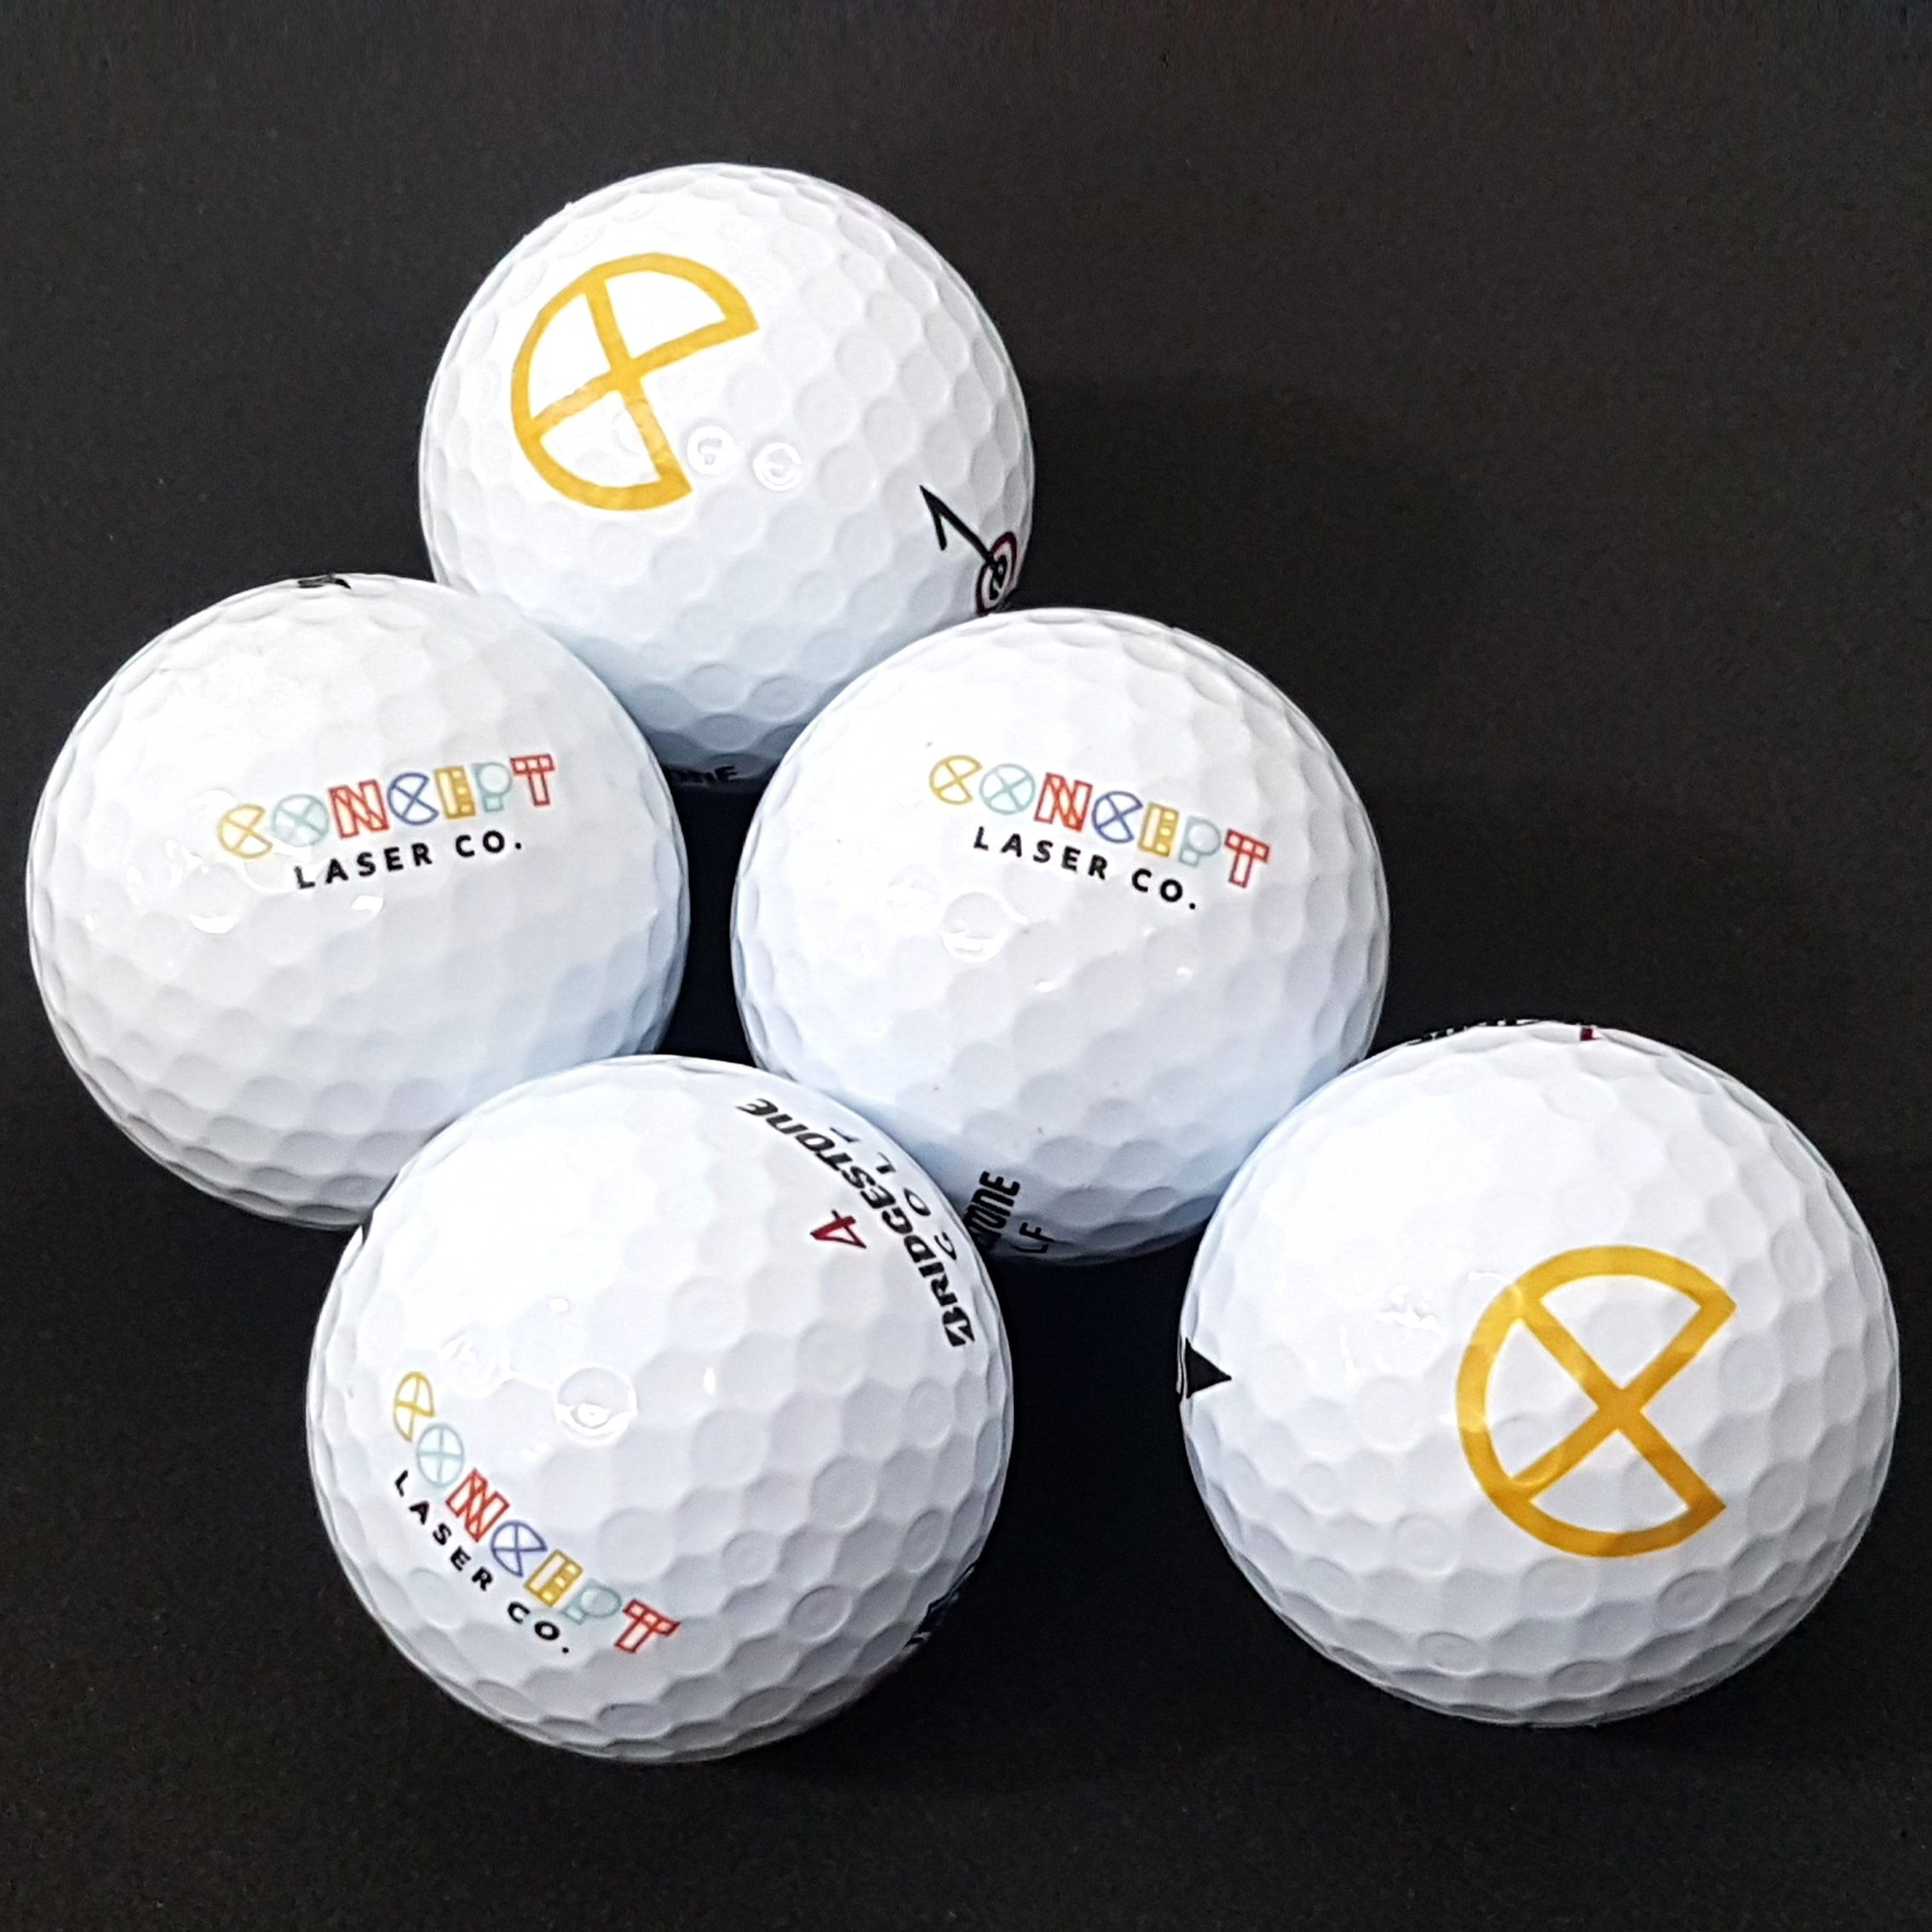 UV Printed Golf Ball - Concept Laser Co